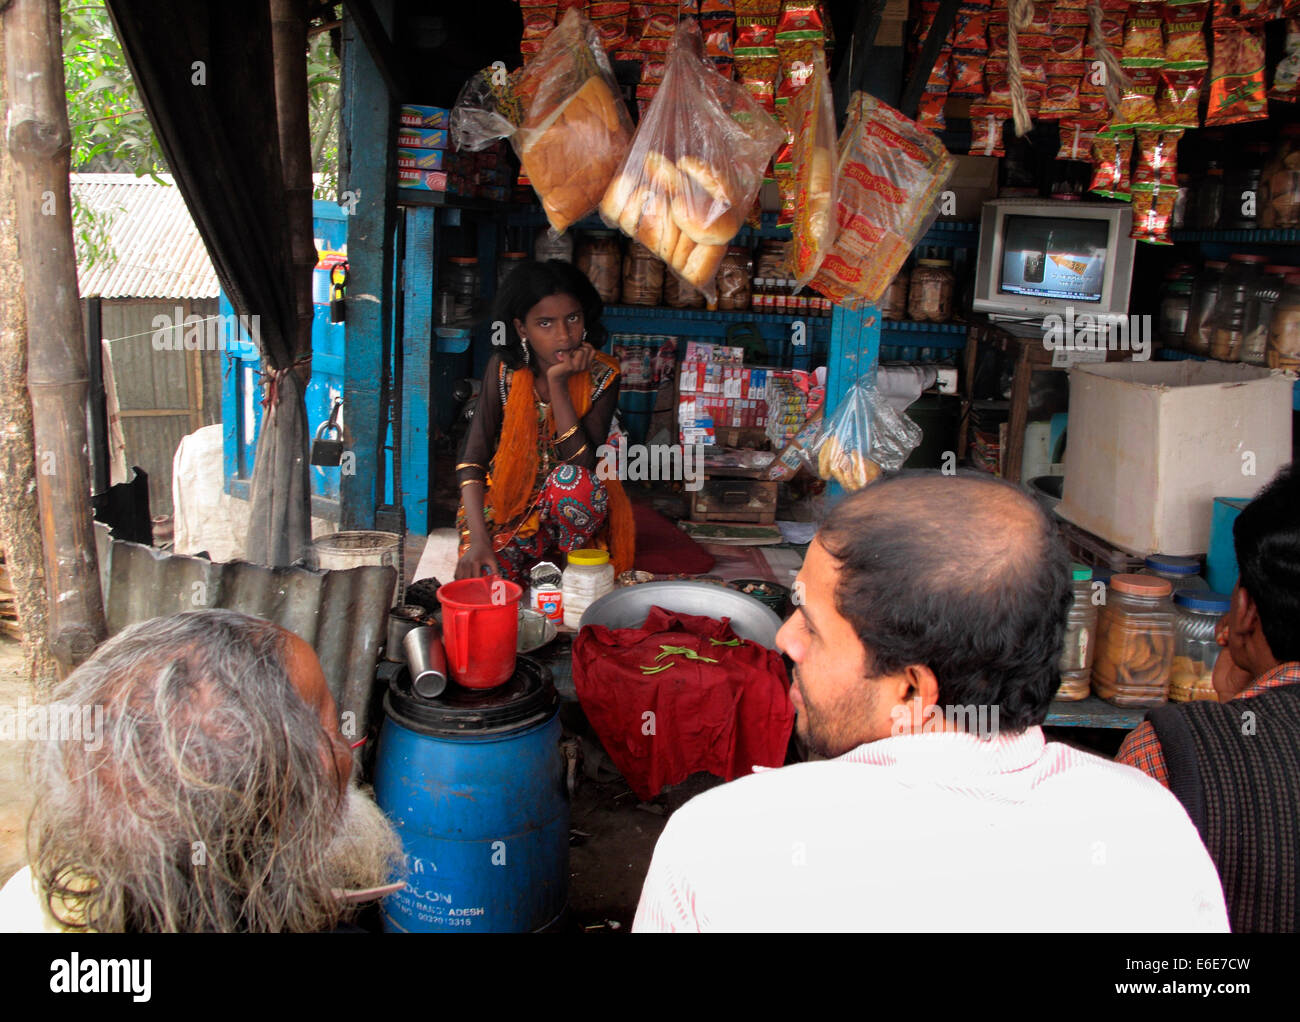 Kids running family store,road side vendors in Bangladesh,Hi teak shed,tea - Stock Image